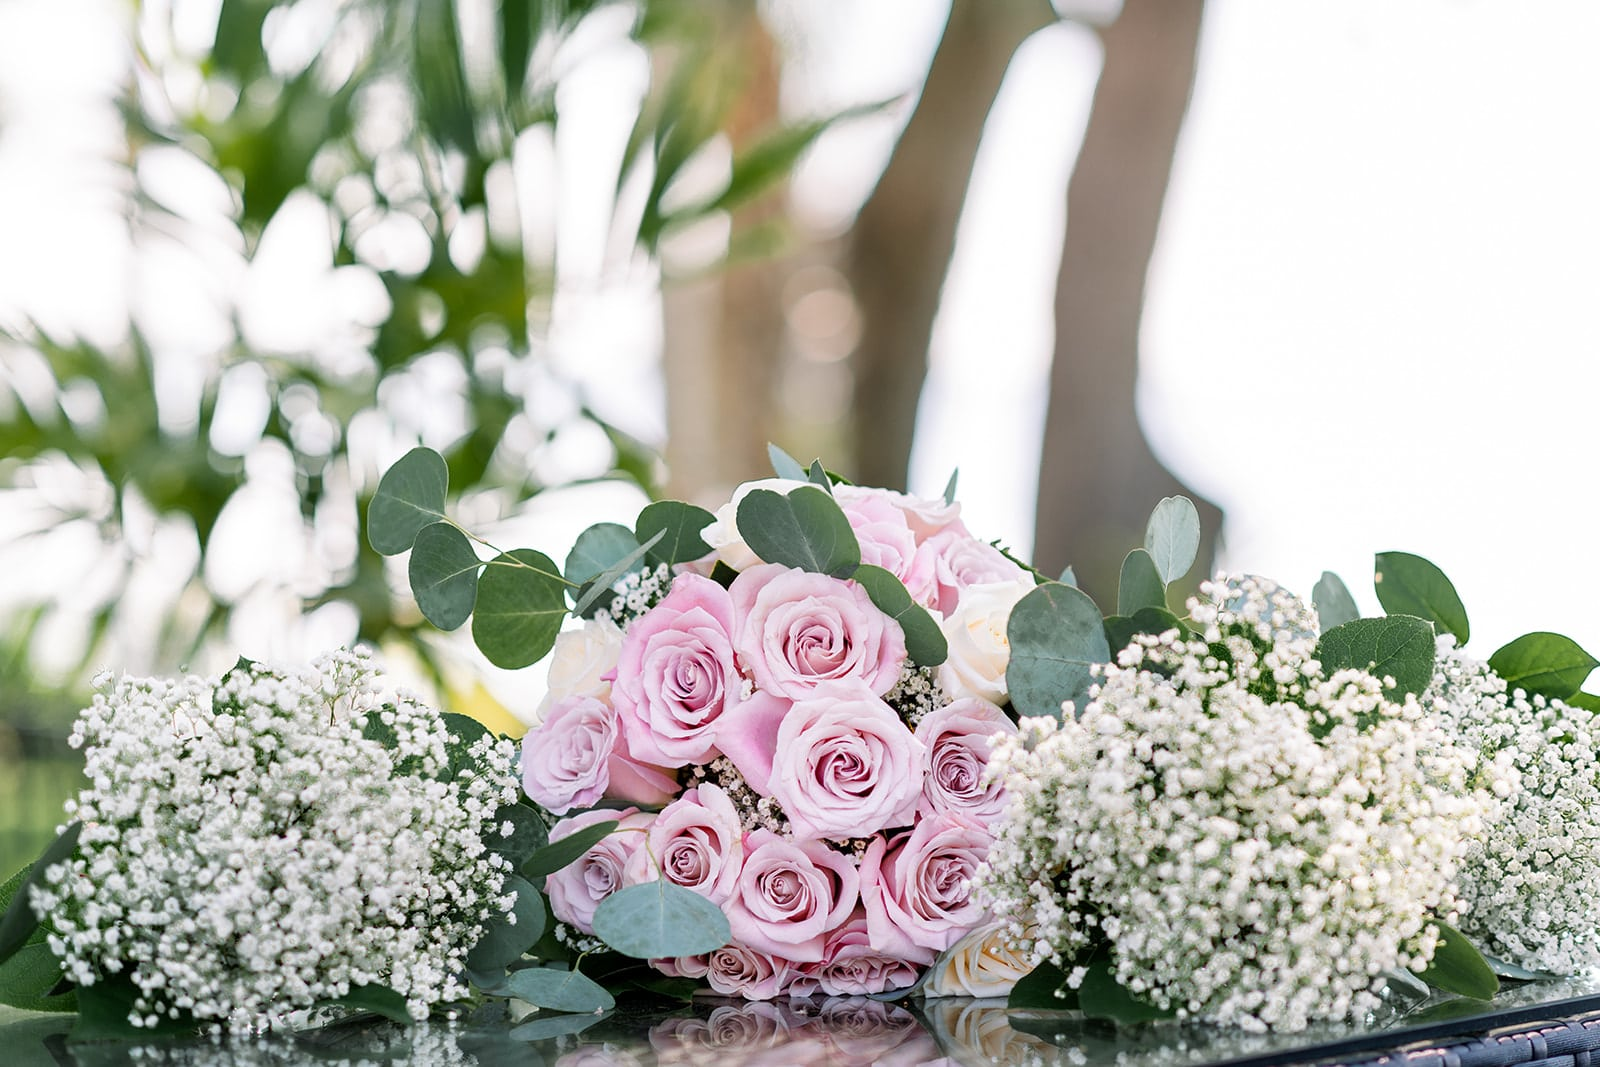 Chynna Pacheco Photography - large rose bouquet flanked by smaller baby's breath bouquets